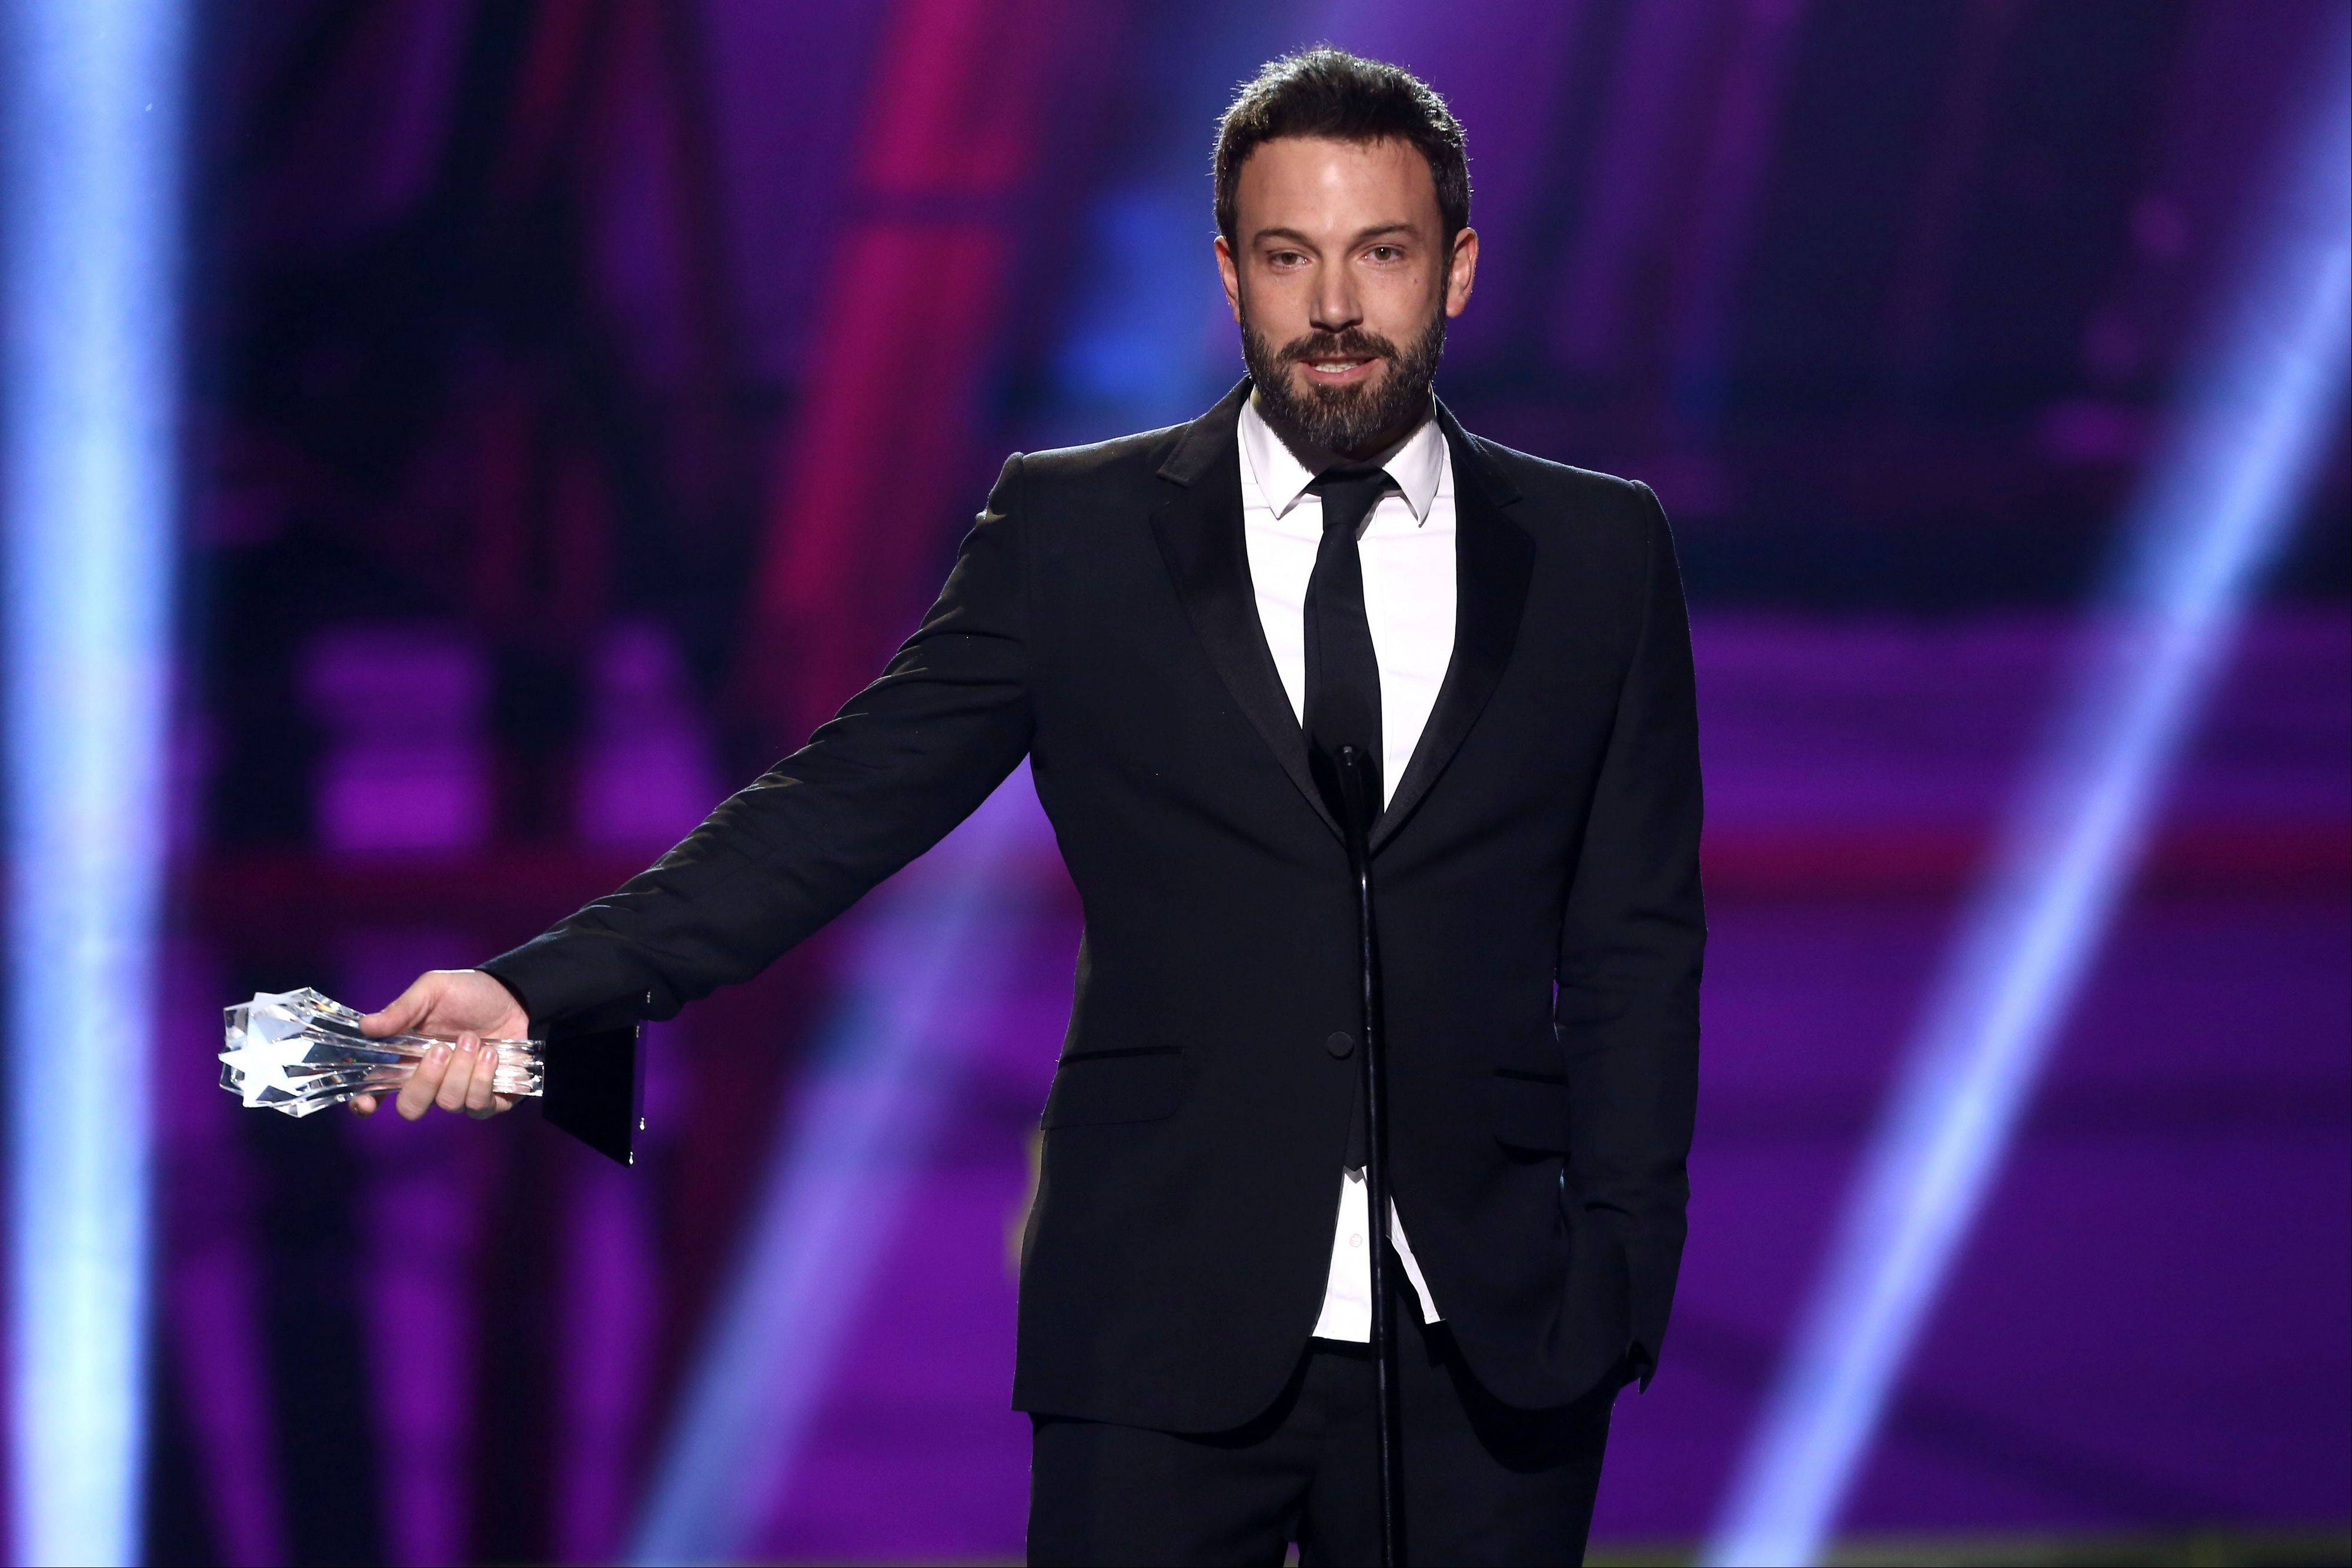 Ben Affleck accepts the award for best director for �Argo� at the 18th Annual Critics� Choice Movie Awards on Thursday in Santa Monica, Calif.